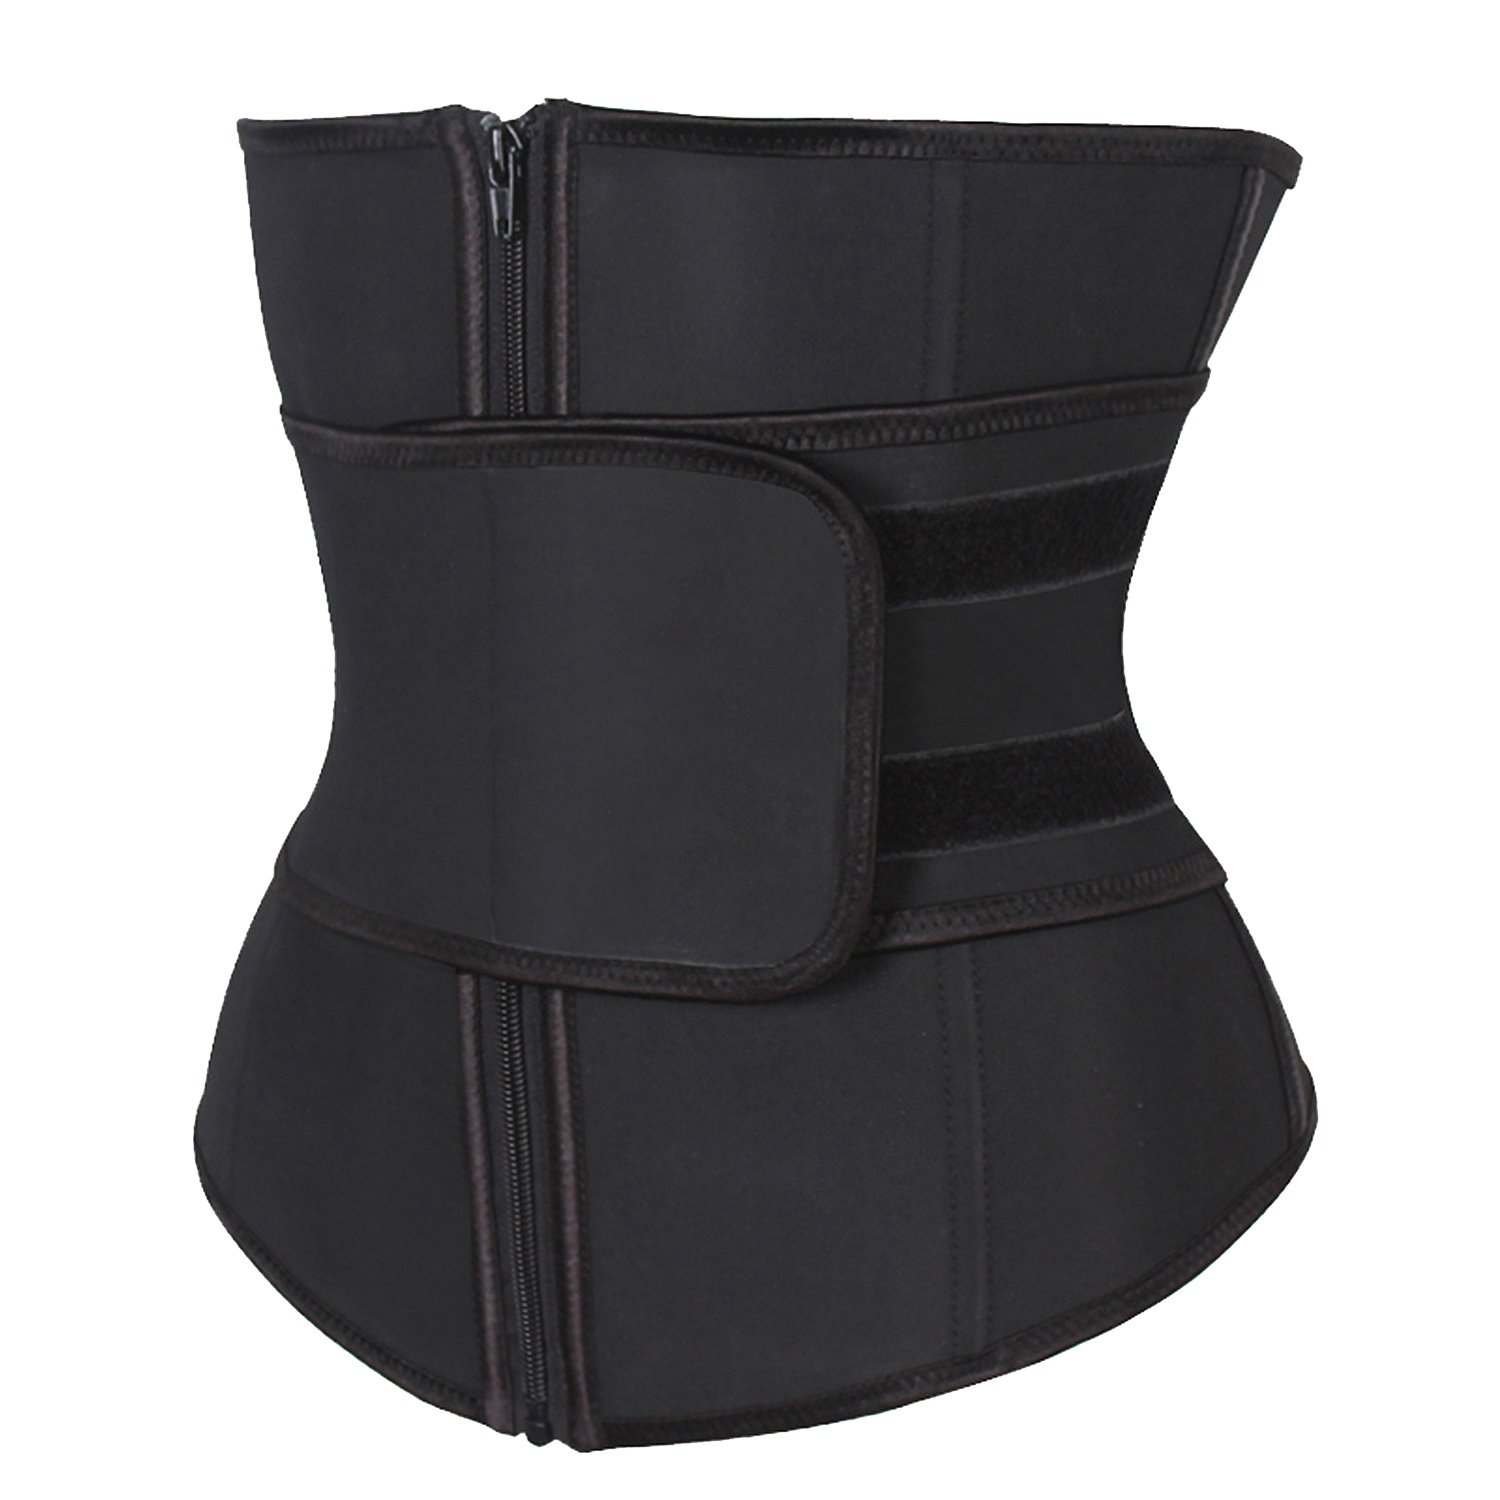 KIWI RATA Abdominal Belt High Compression Zipper Neoprene Waist Trainer Cincher Corset Body Fajas Sweat